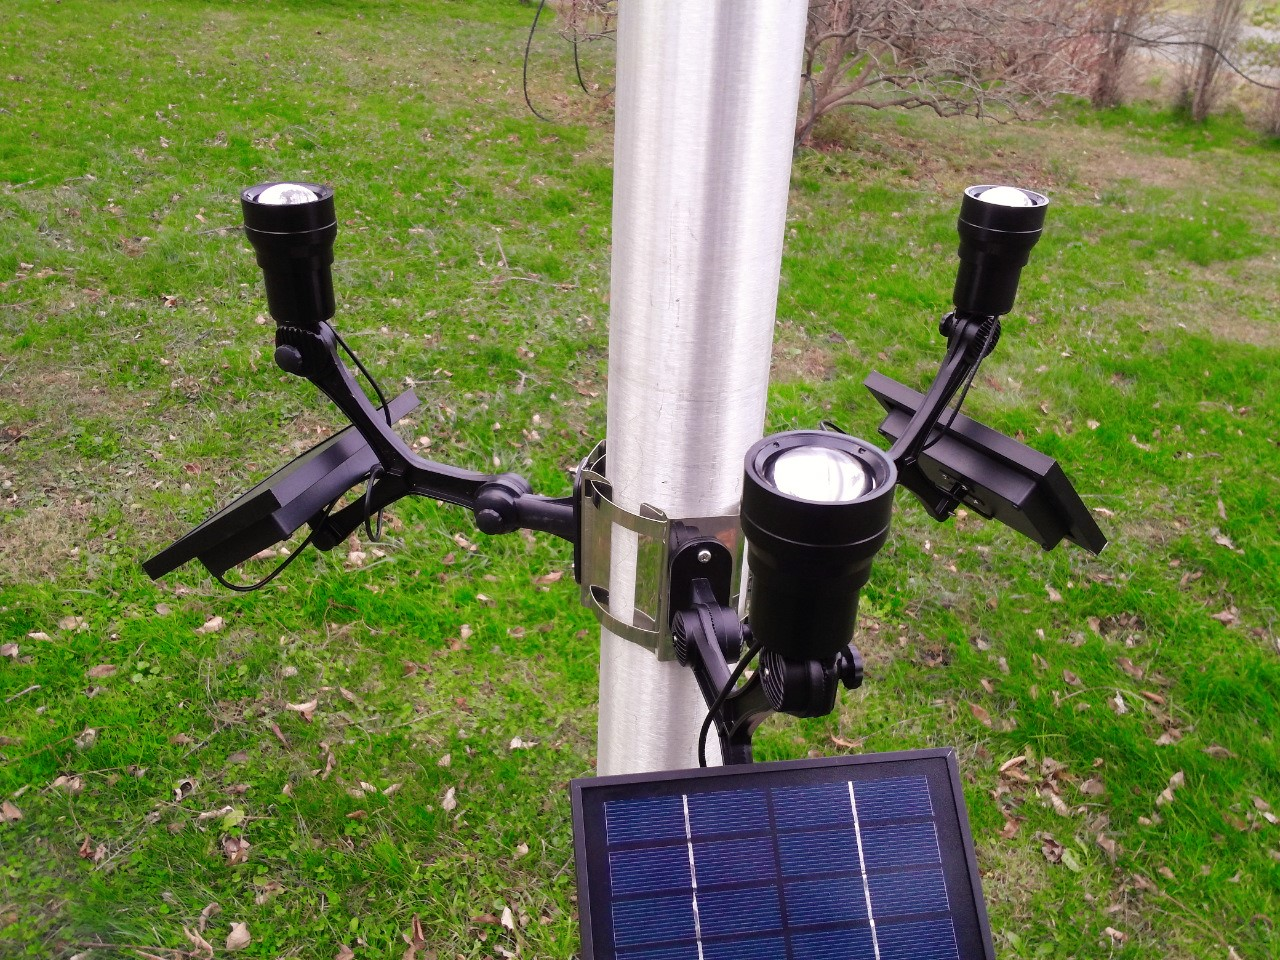 commercial solar flagpole light ultra series cree flexible head. Black Bedroom Furniture Sets. Home Design Ideas